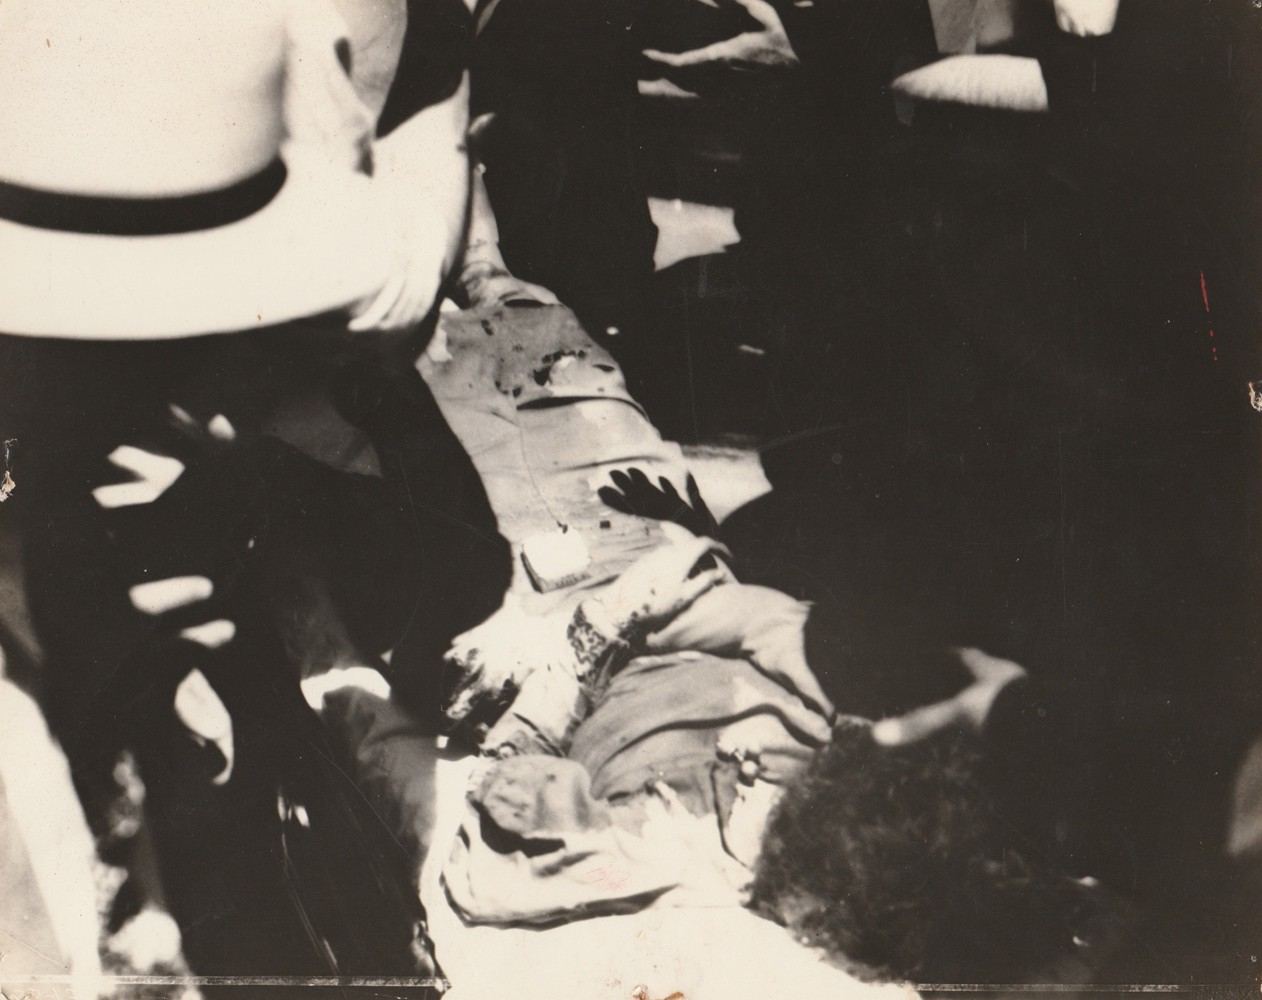 These rare photos of Bonnie and Clyde reveal the dark